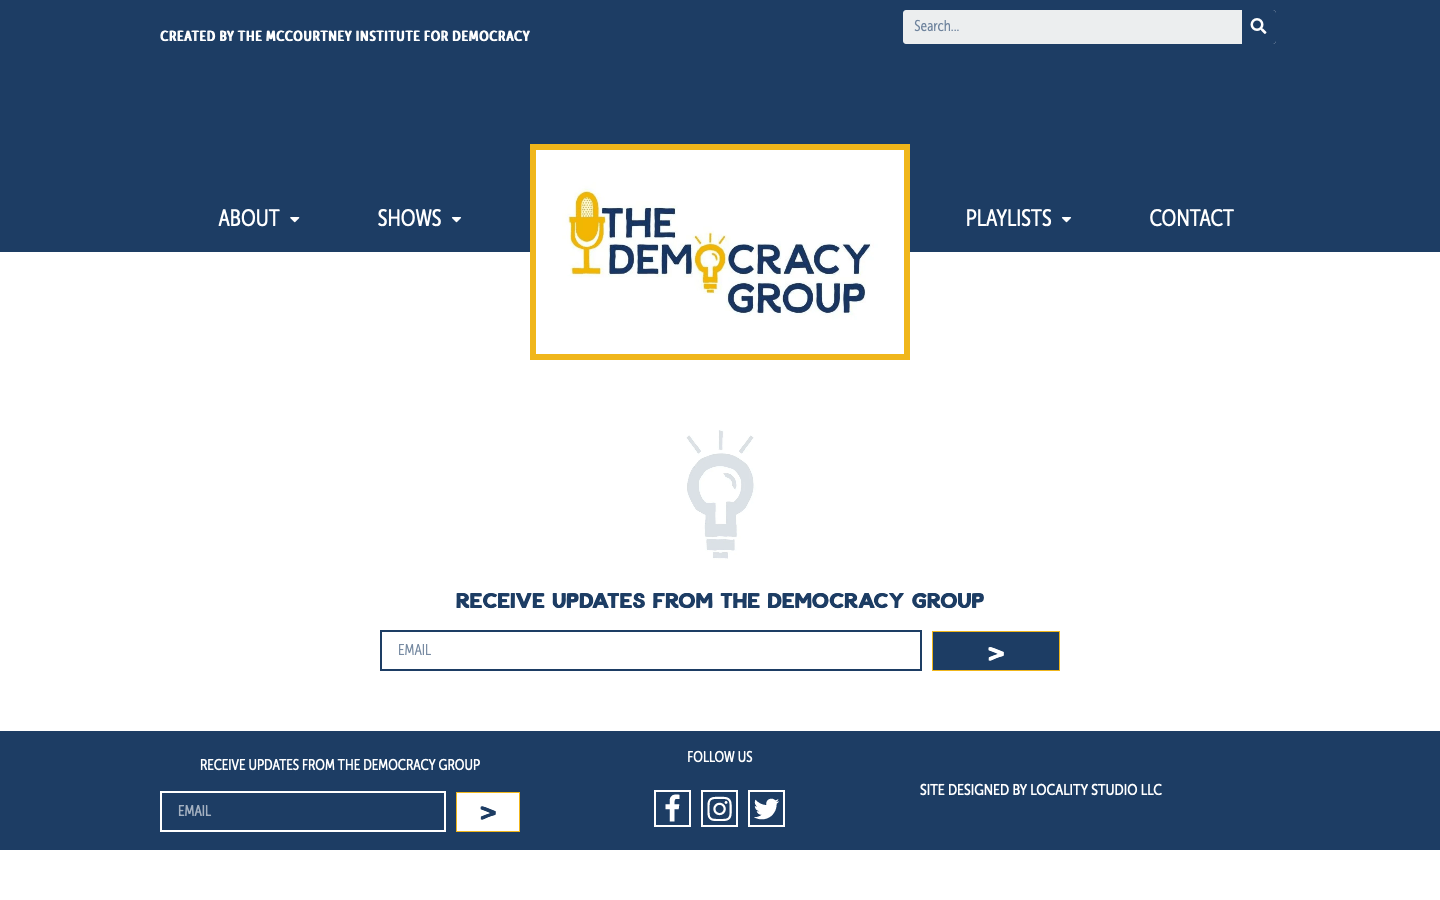 The Democracy Group homepage